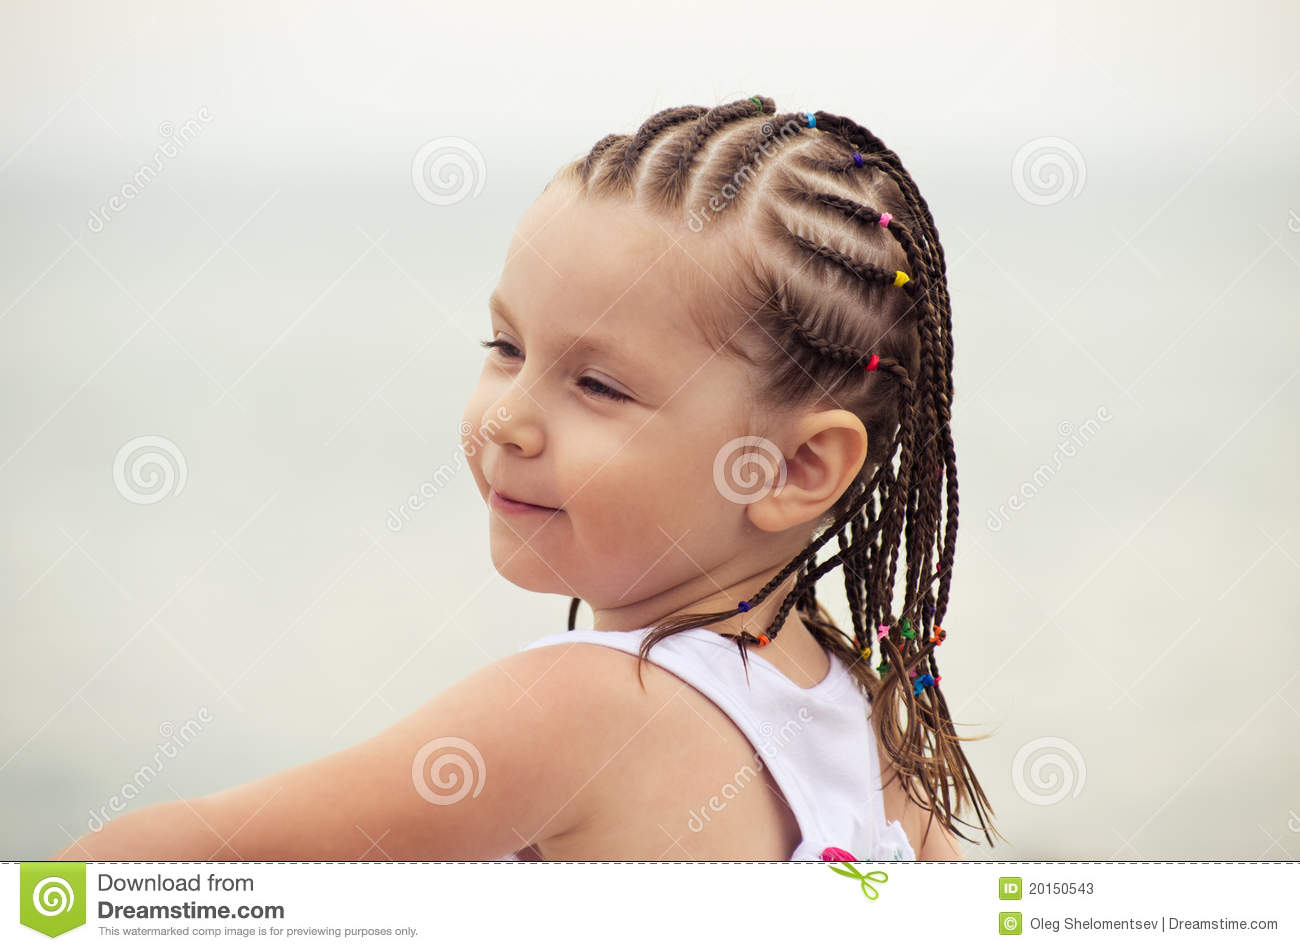 Little Girl With Dreadlocks Stock Photos - Image: 20150543